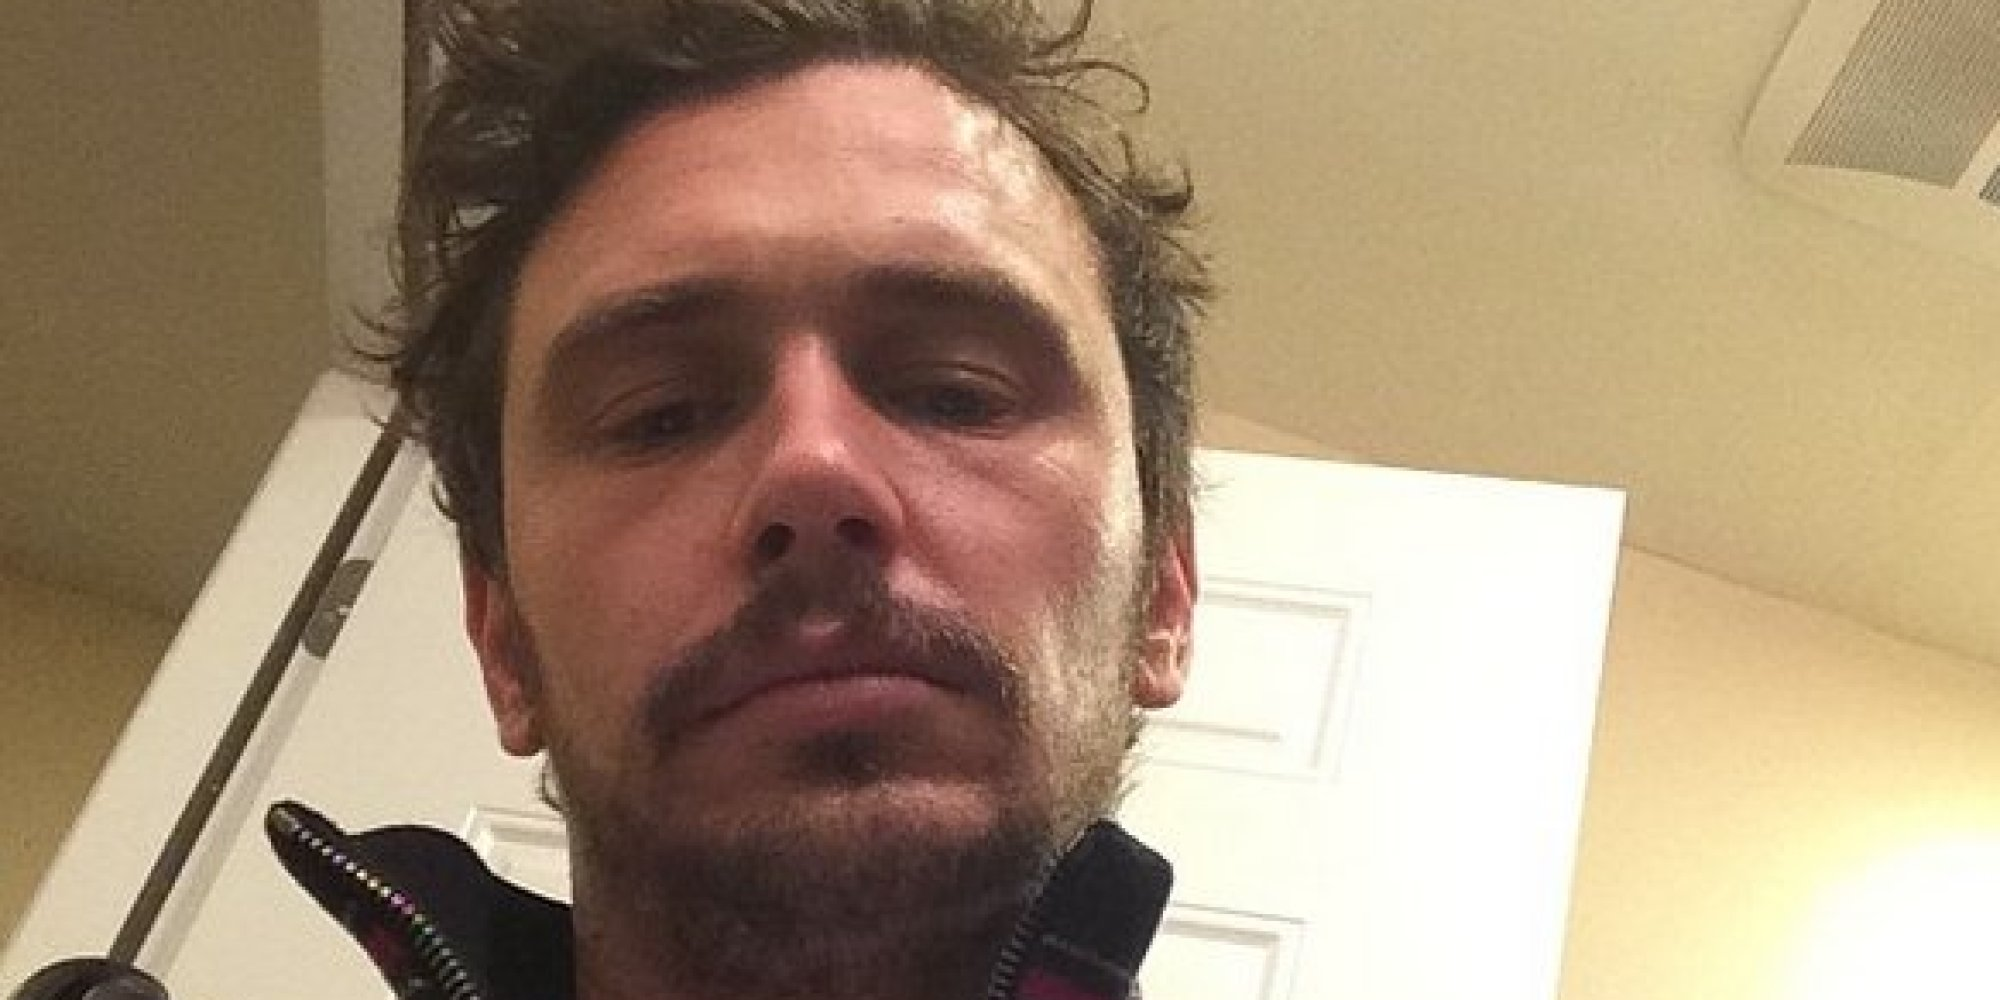 James Franco, Abuse, Nude, Selfie, Golden Globes, Twitter, Allegations, Metoo, Timesup